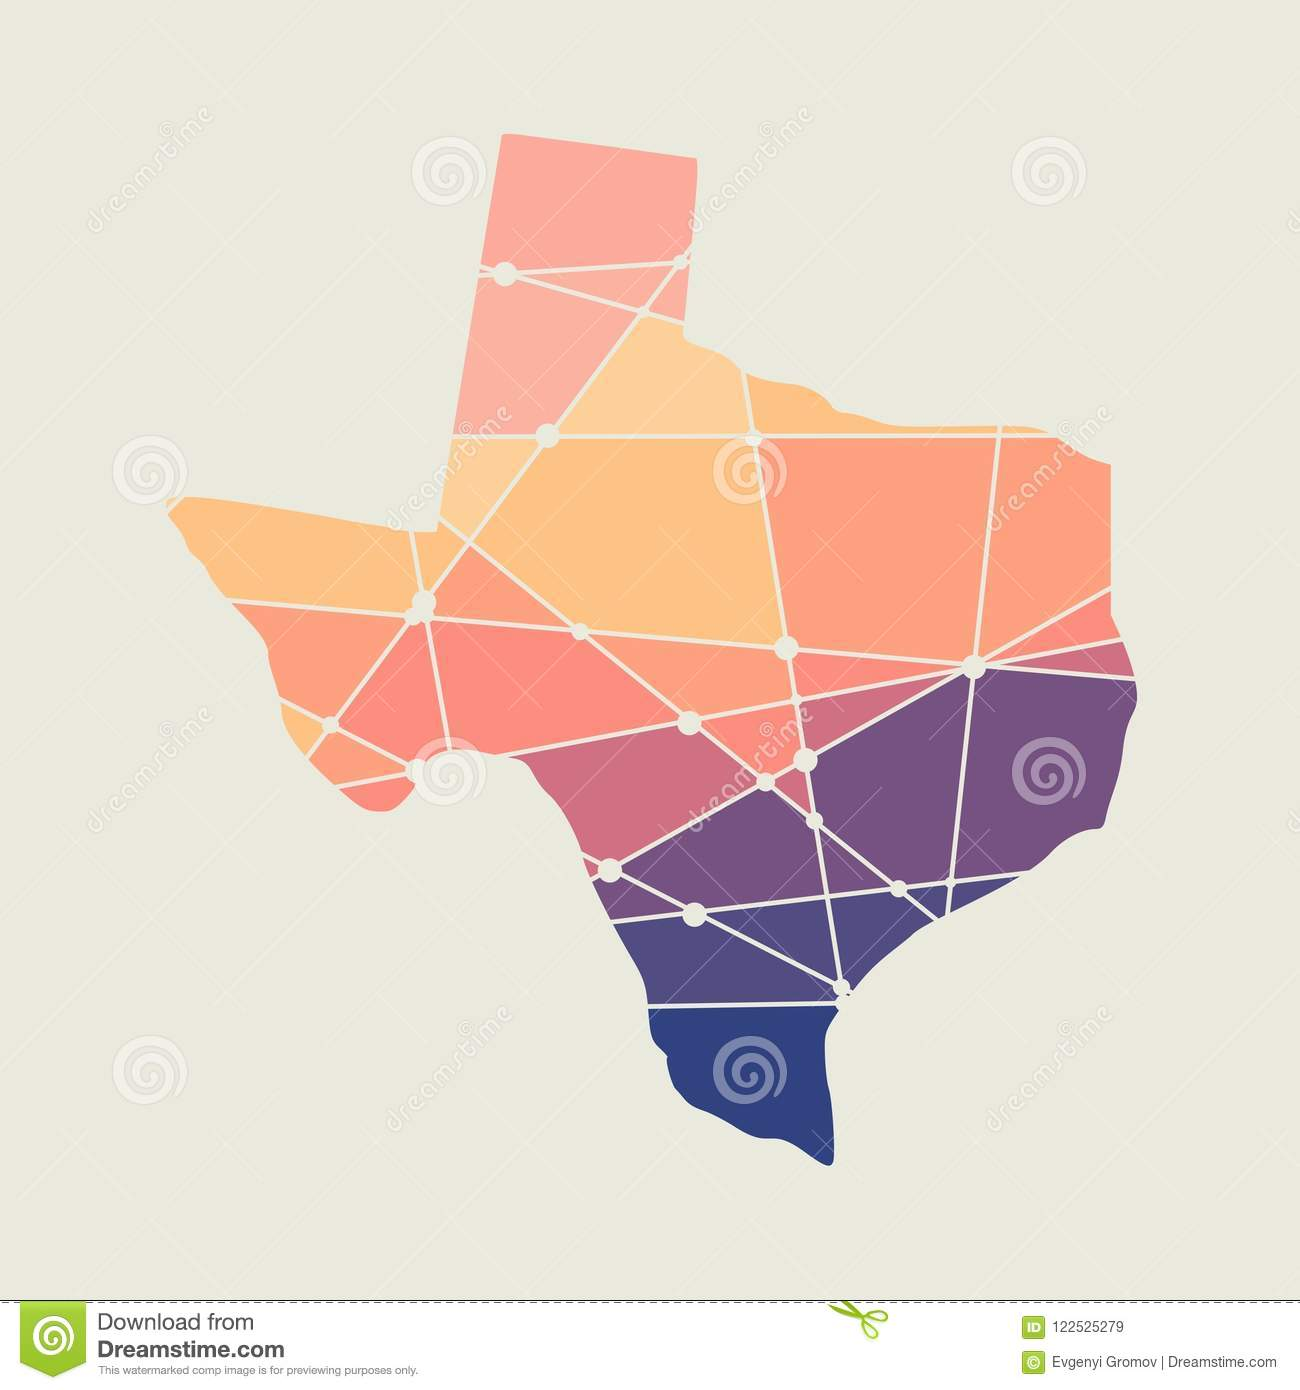 Texas state map stock vector. Illustration of texas - 122525279 on texas lone star state map, texas united states, texas vs. california size, texas state large map, texas map north america, 2nd biggest state in usa, google maps texas usa, united states political map usa, texas superfund sites map, texas state map by county, texas on usa map, texas golf map, texas map to print, texas maps online, texas state geography map, texas with capital, texas u.s.a, texas road map of usa, texas zip codes by state, texas state project,